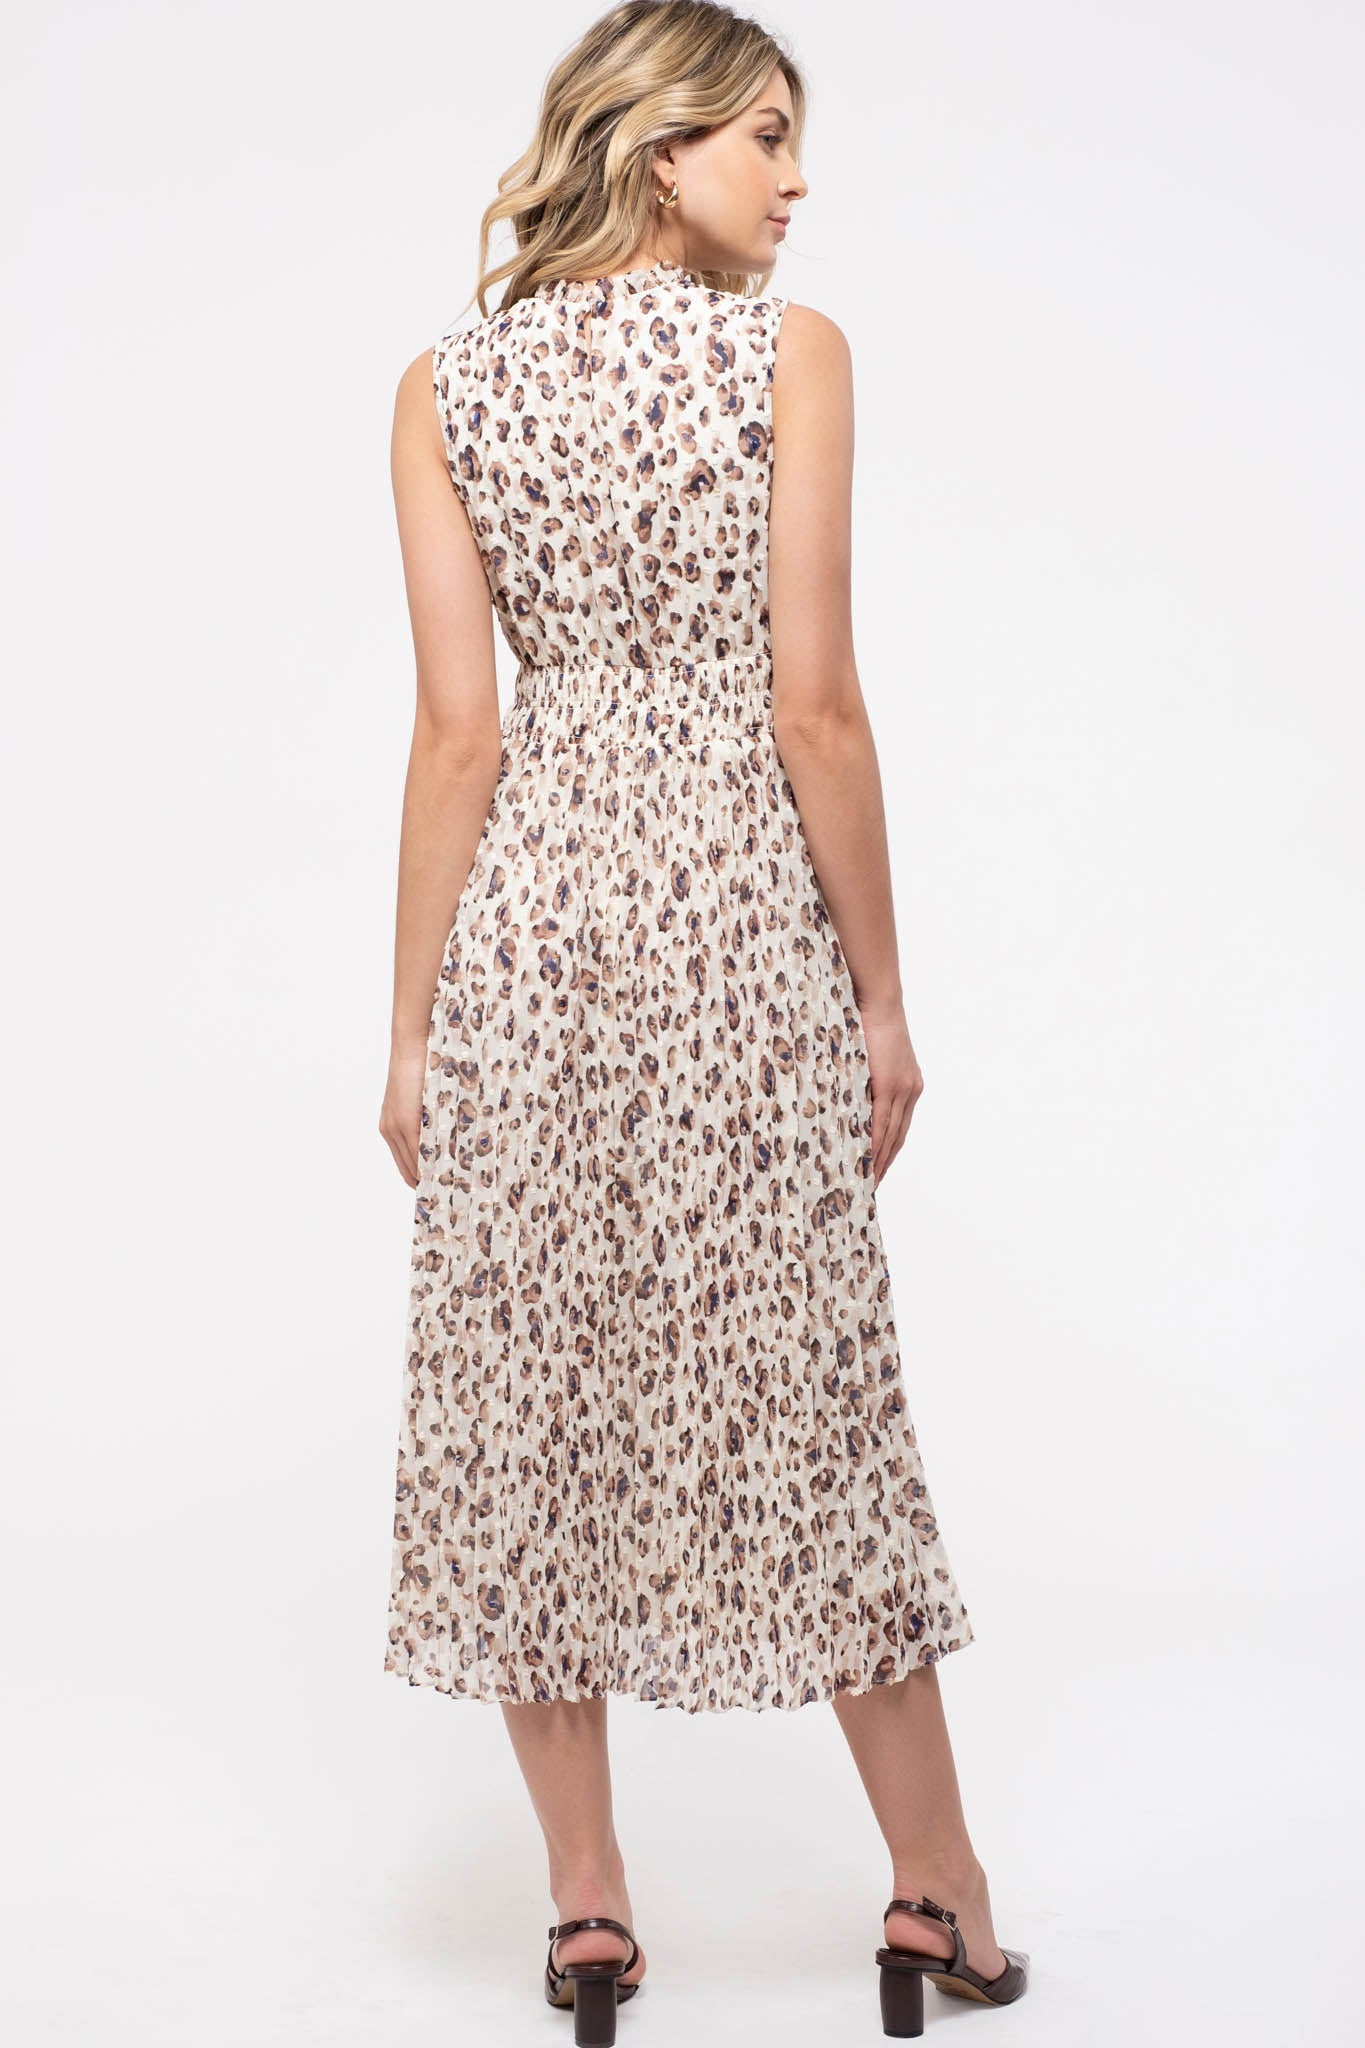 Swiss Dot Leopard Midi-Dress